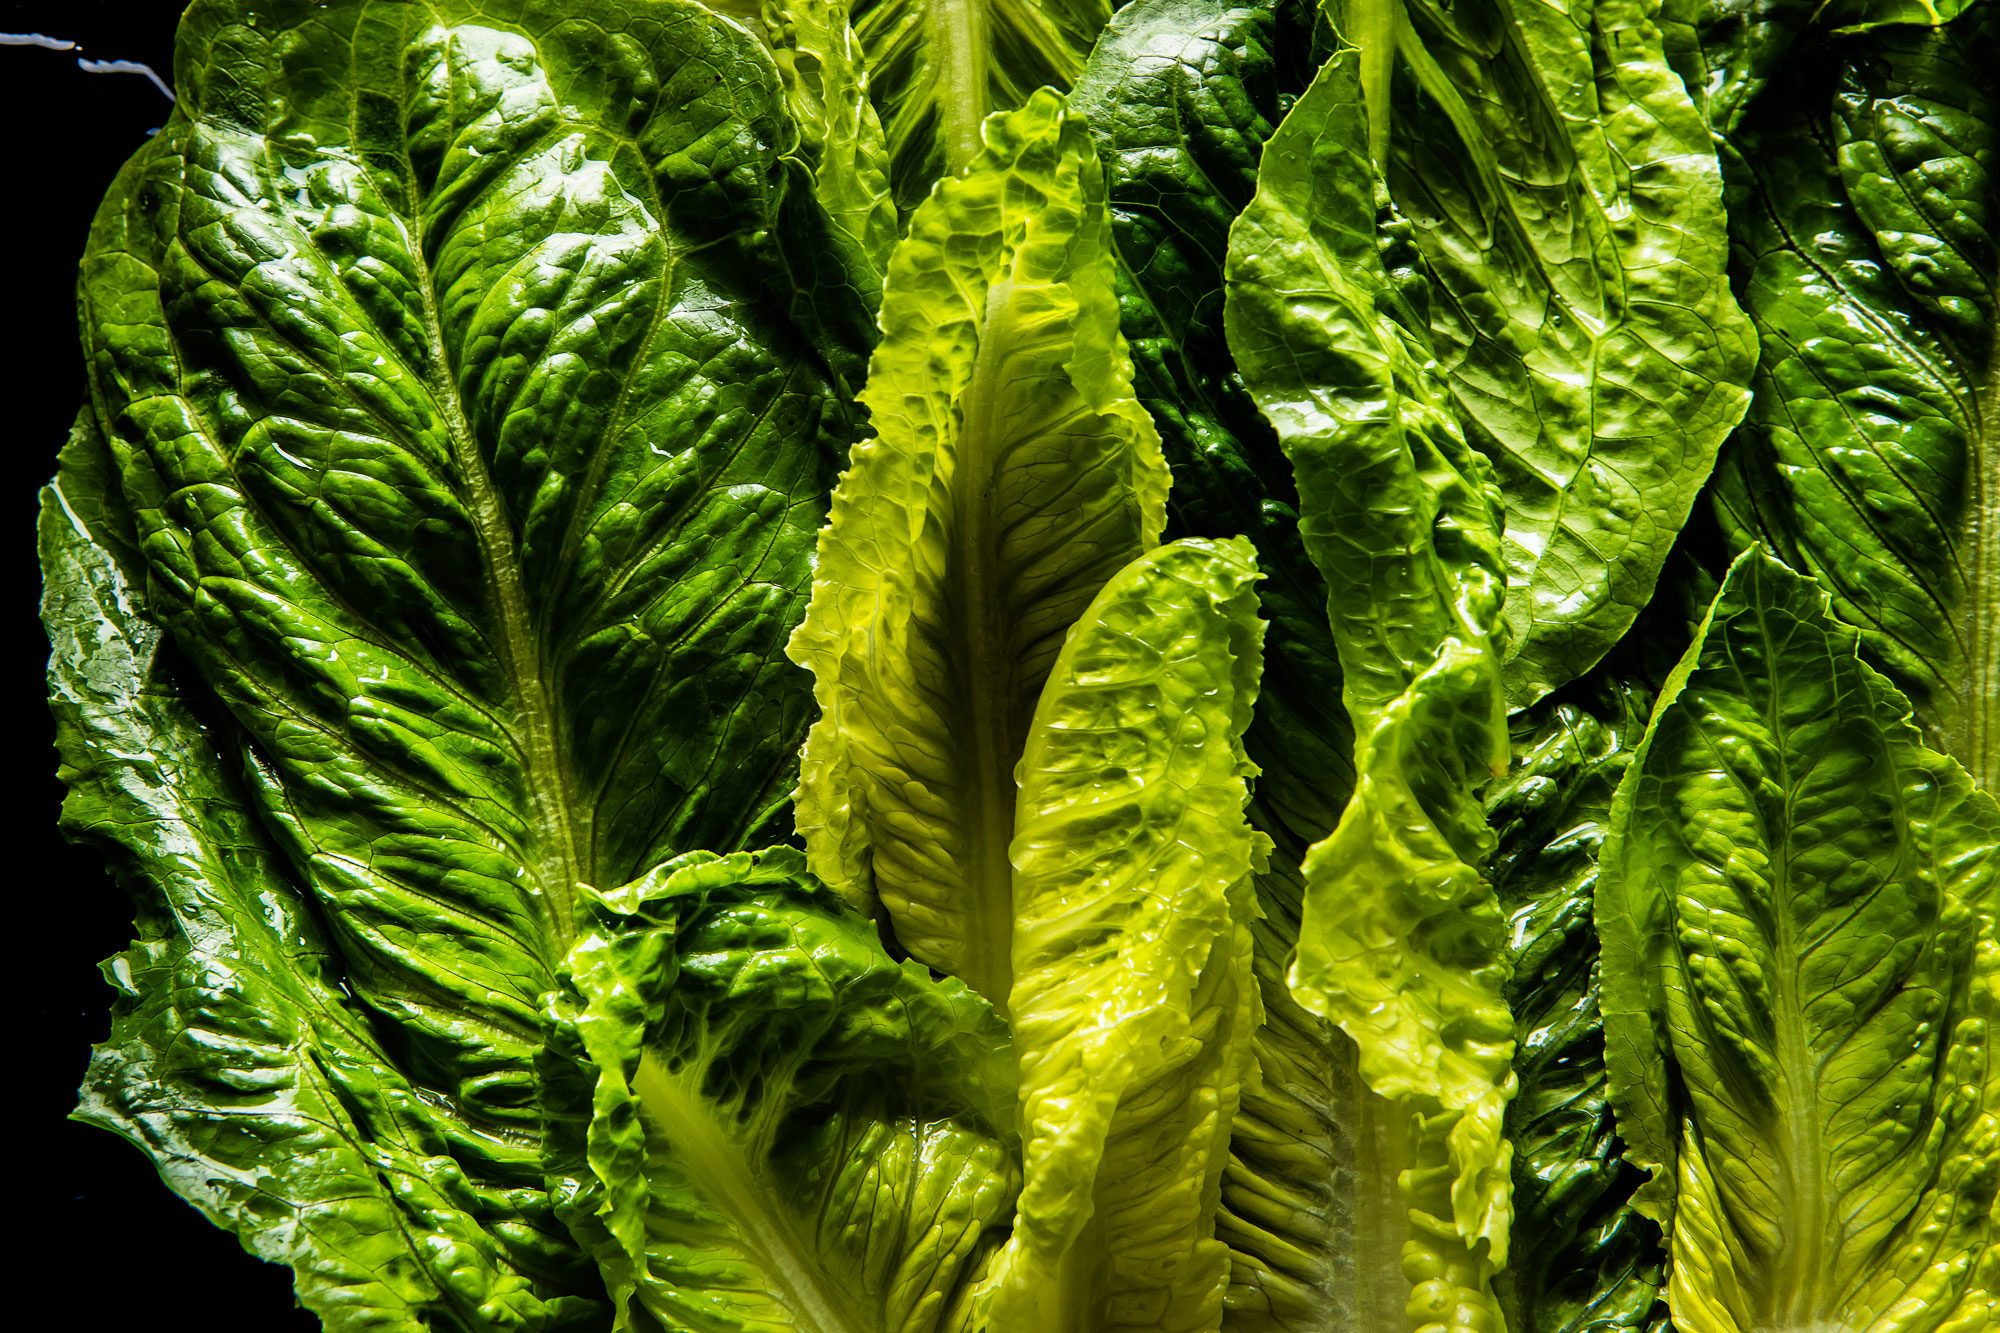 Article-Washing-Vegatables-Cooking-Romaine